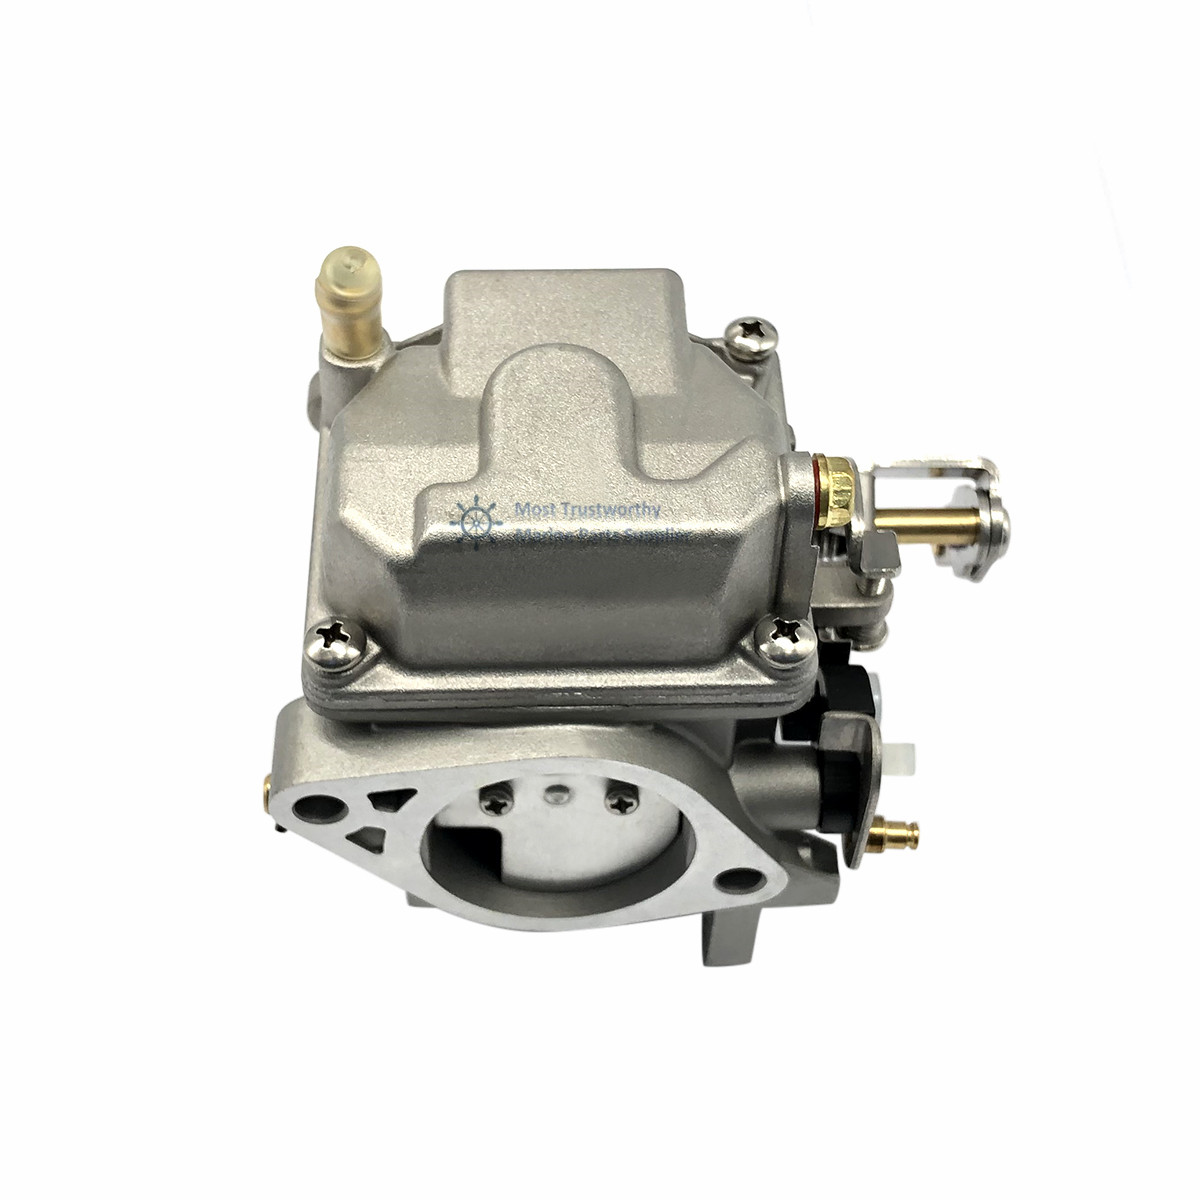 New Carburetor For Replacement  Yamaha  25HP 30HP 2-stroke   Outboard Engine Motor OEM 61N-14301